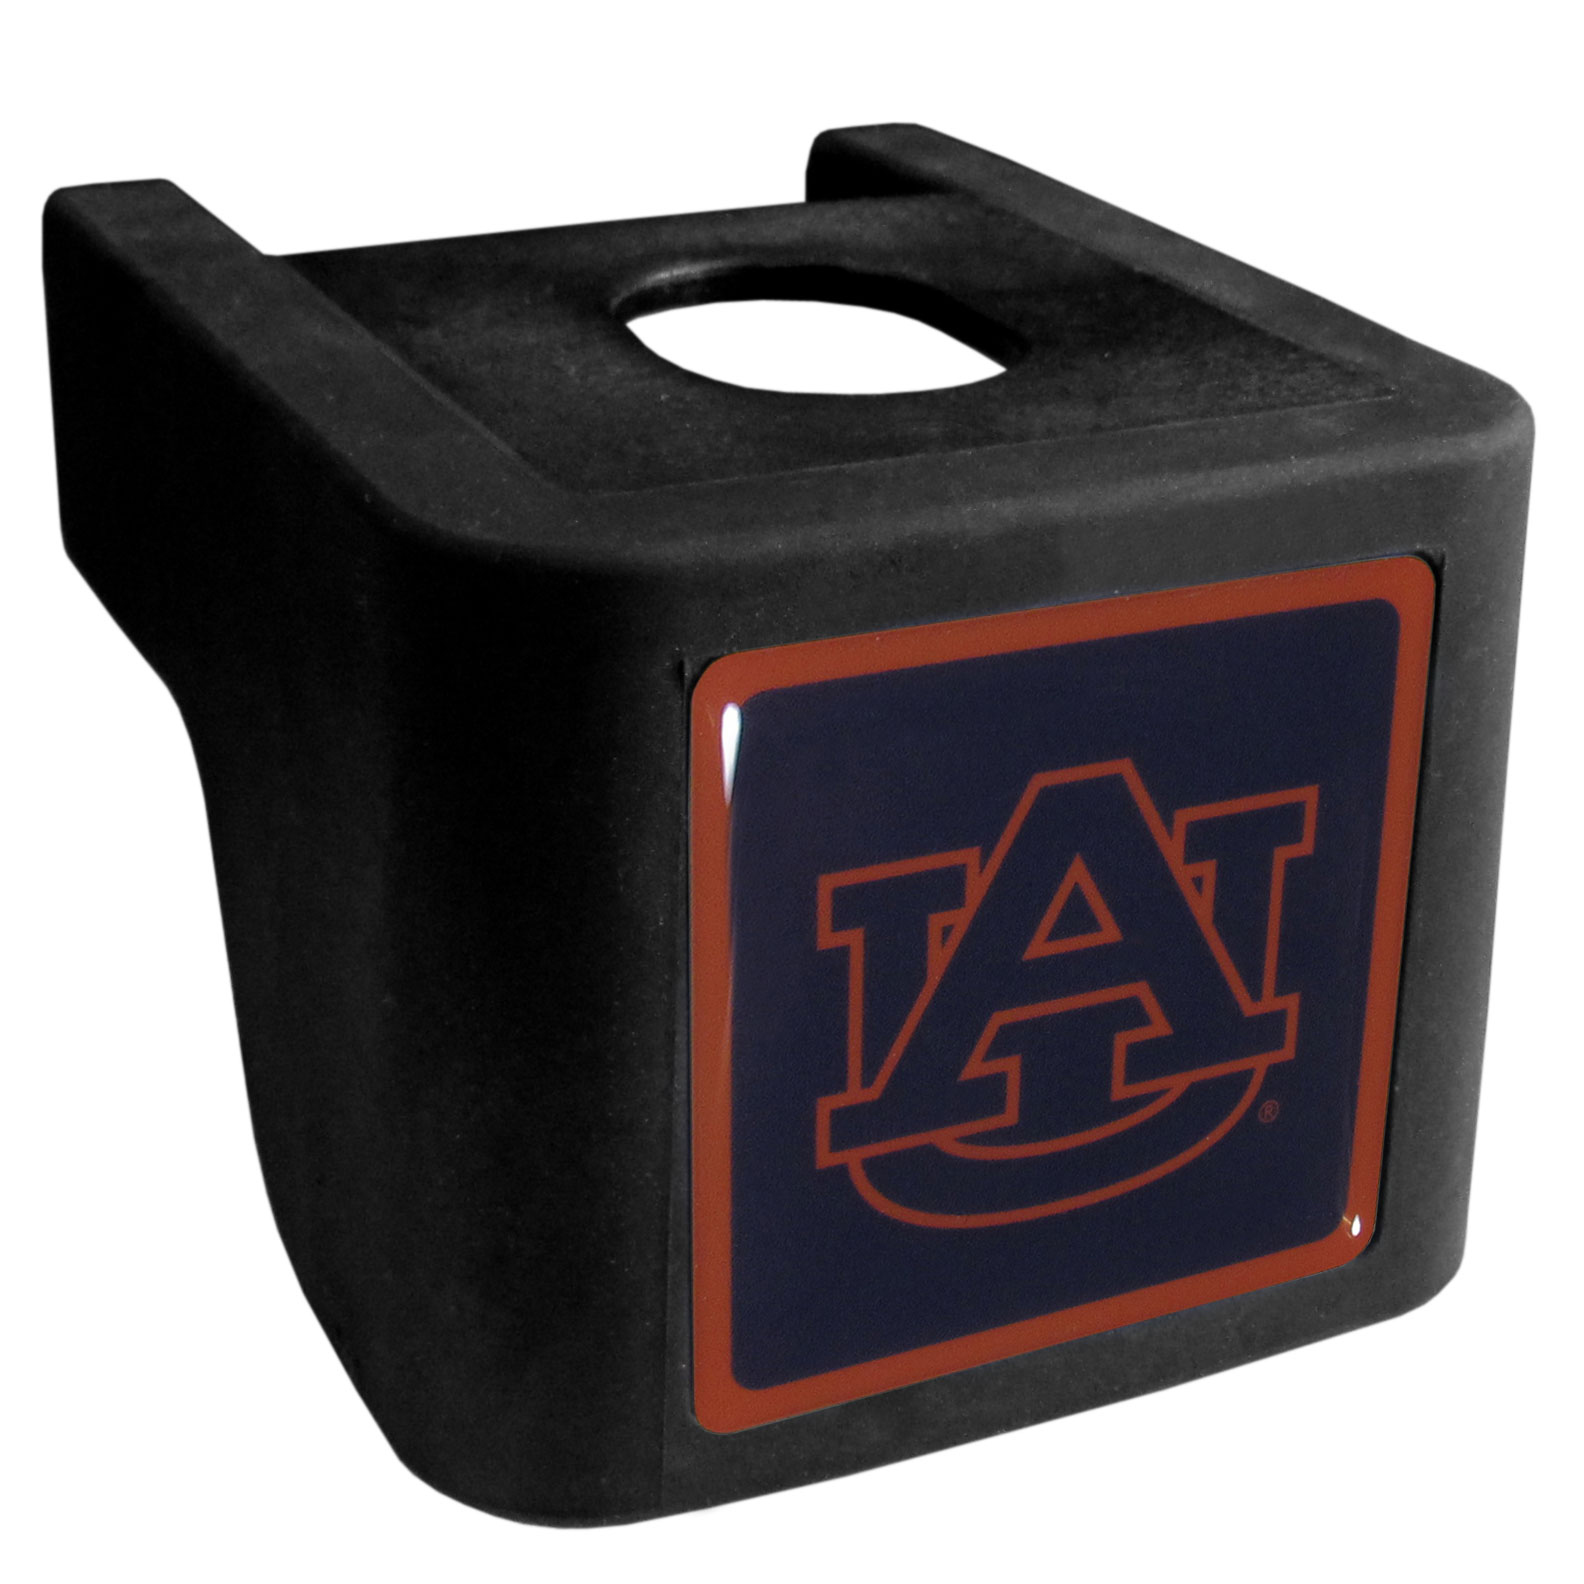 Auburn Tigers Shin Shield Hitch Cover - This unique hitch cover features a large Auburn Tigers logo. If you have ever hooked up a trailer or boat your have probably smashed your shins on the ball hitch a few times. This revolutionary shin shield hitch cover provides your much abused shins with the protection they deserve! The tough rubber hitch is rated to work with Class V hitch receivers hauling up to 17,000 gross trailer weight and 1,700 tongue weight allowing you to leave it on while hauling.